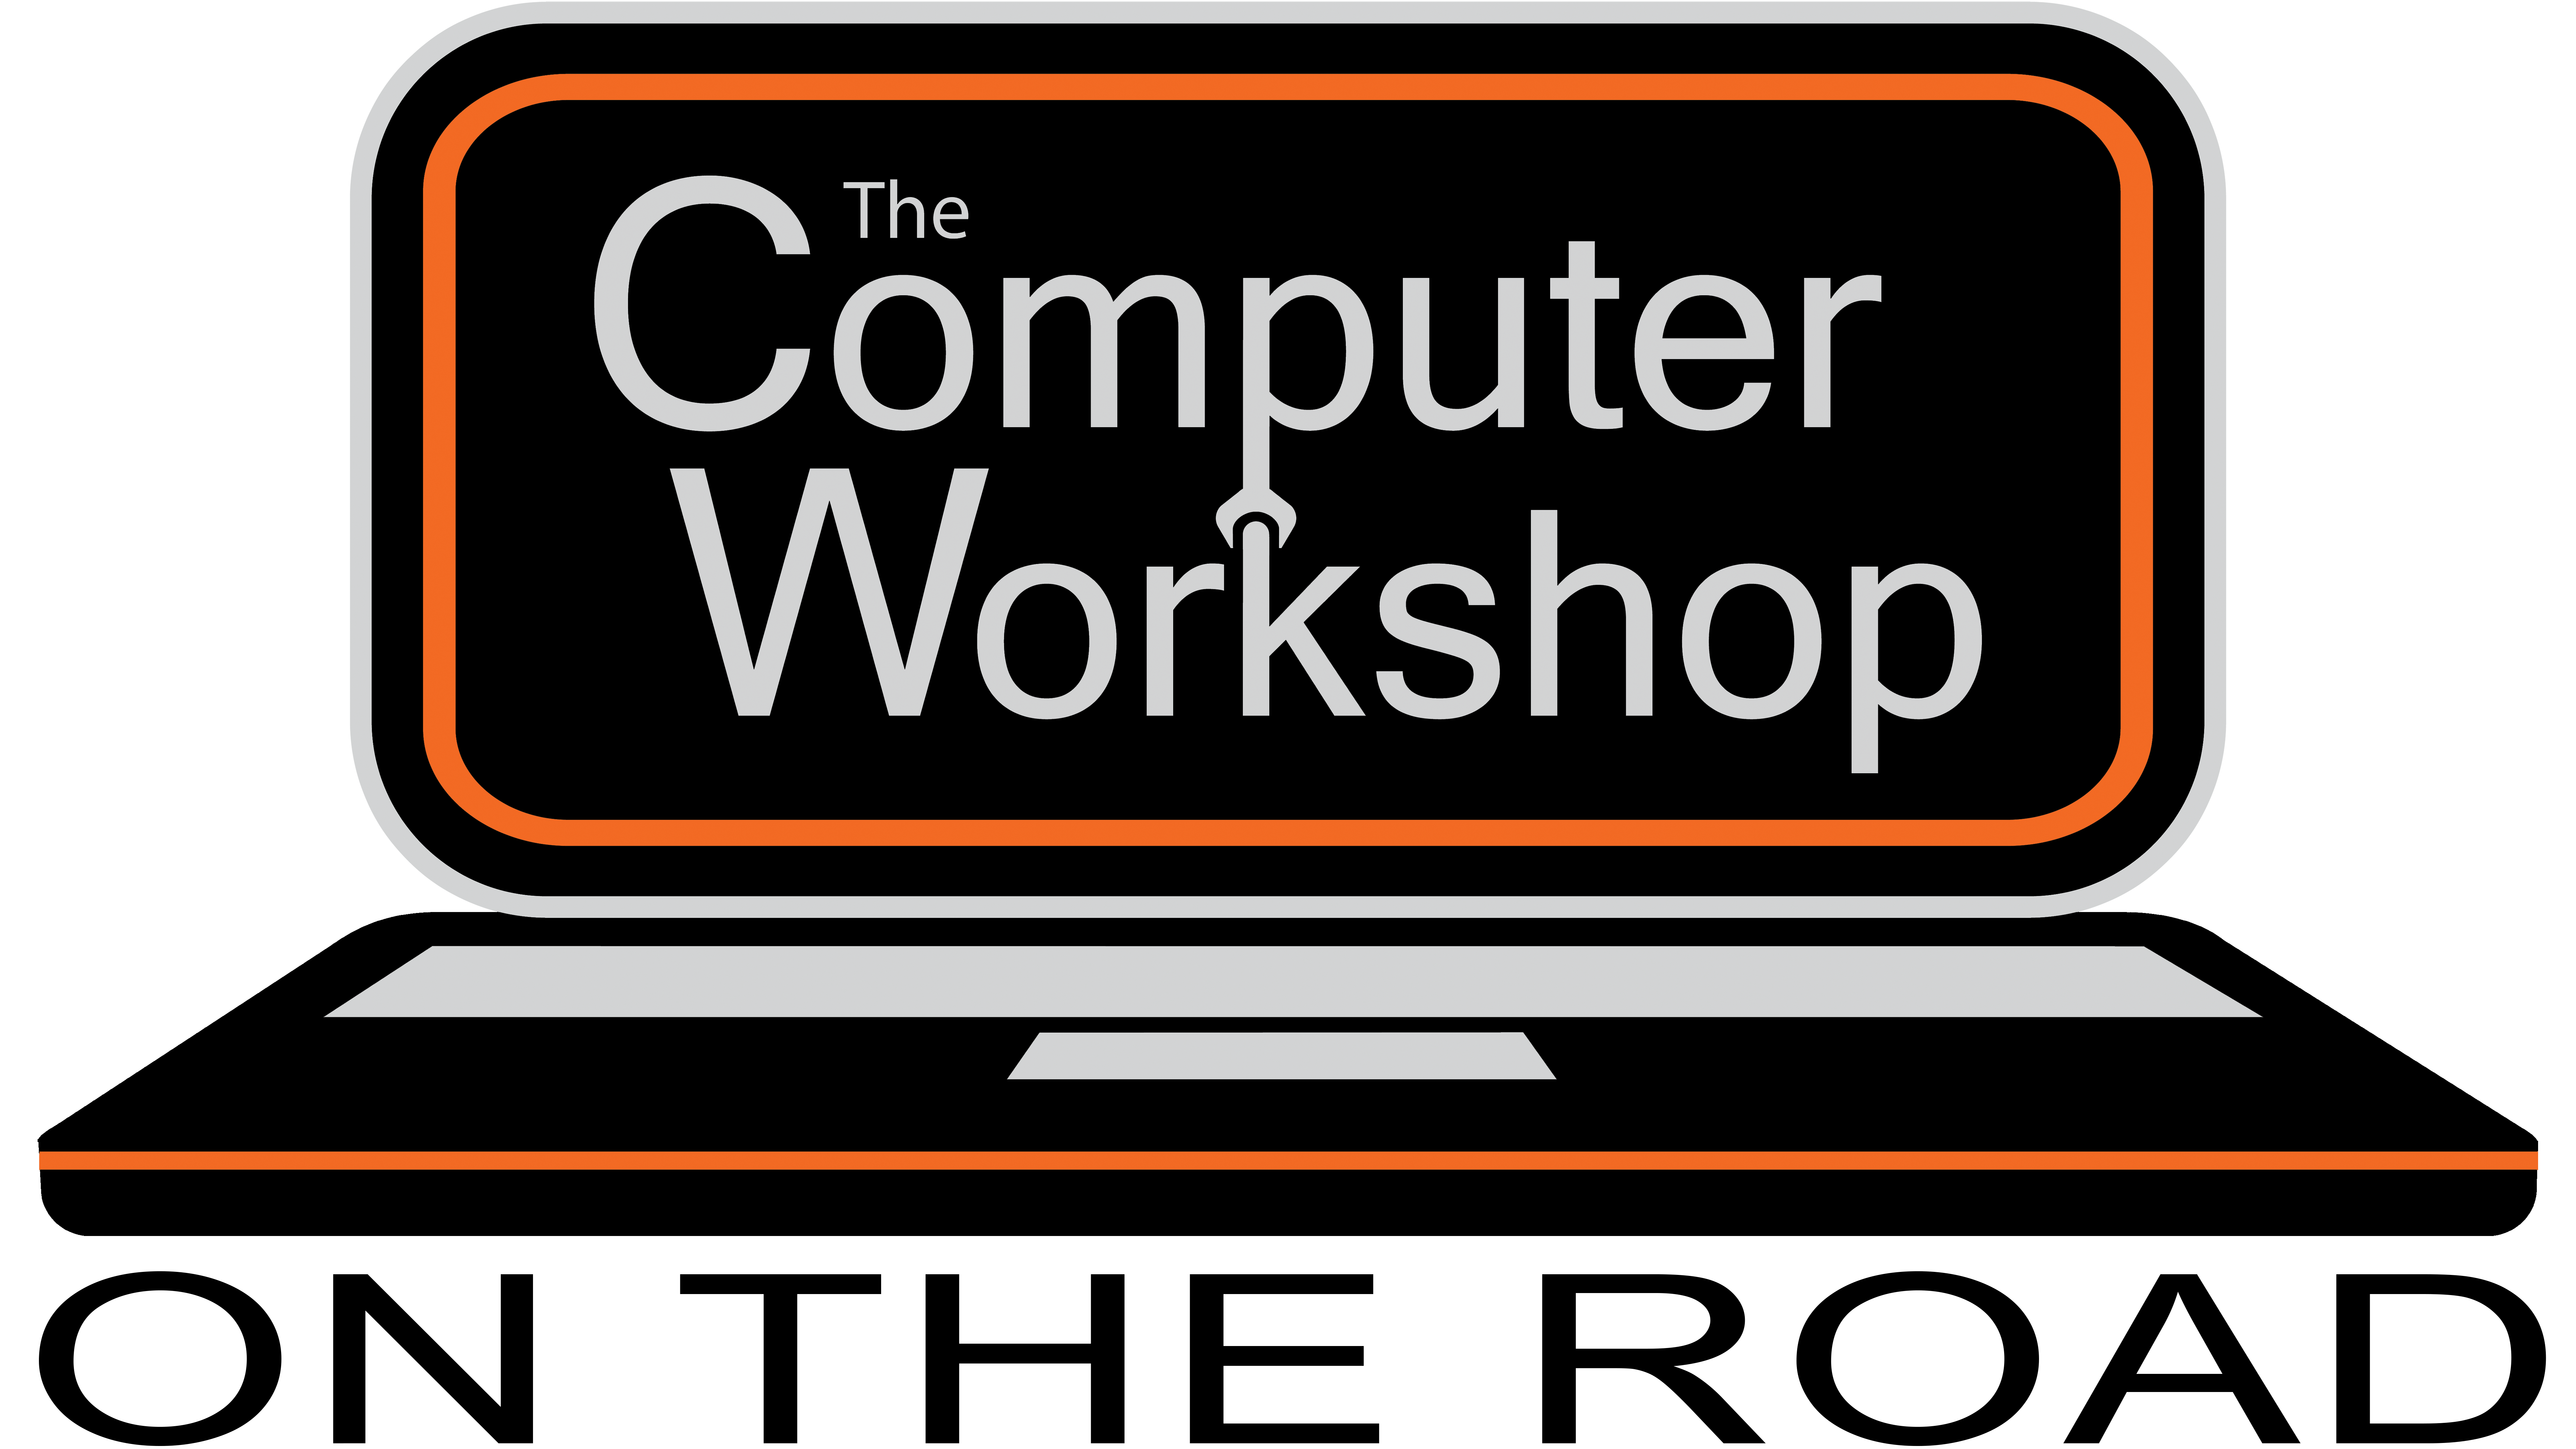 The Computer Workshop On The Road Logo